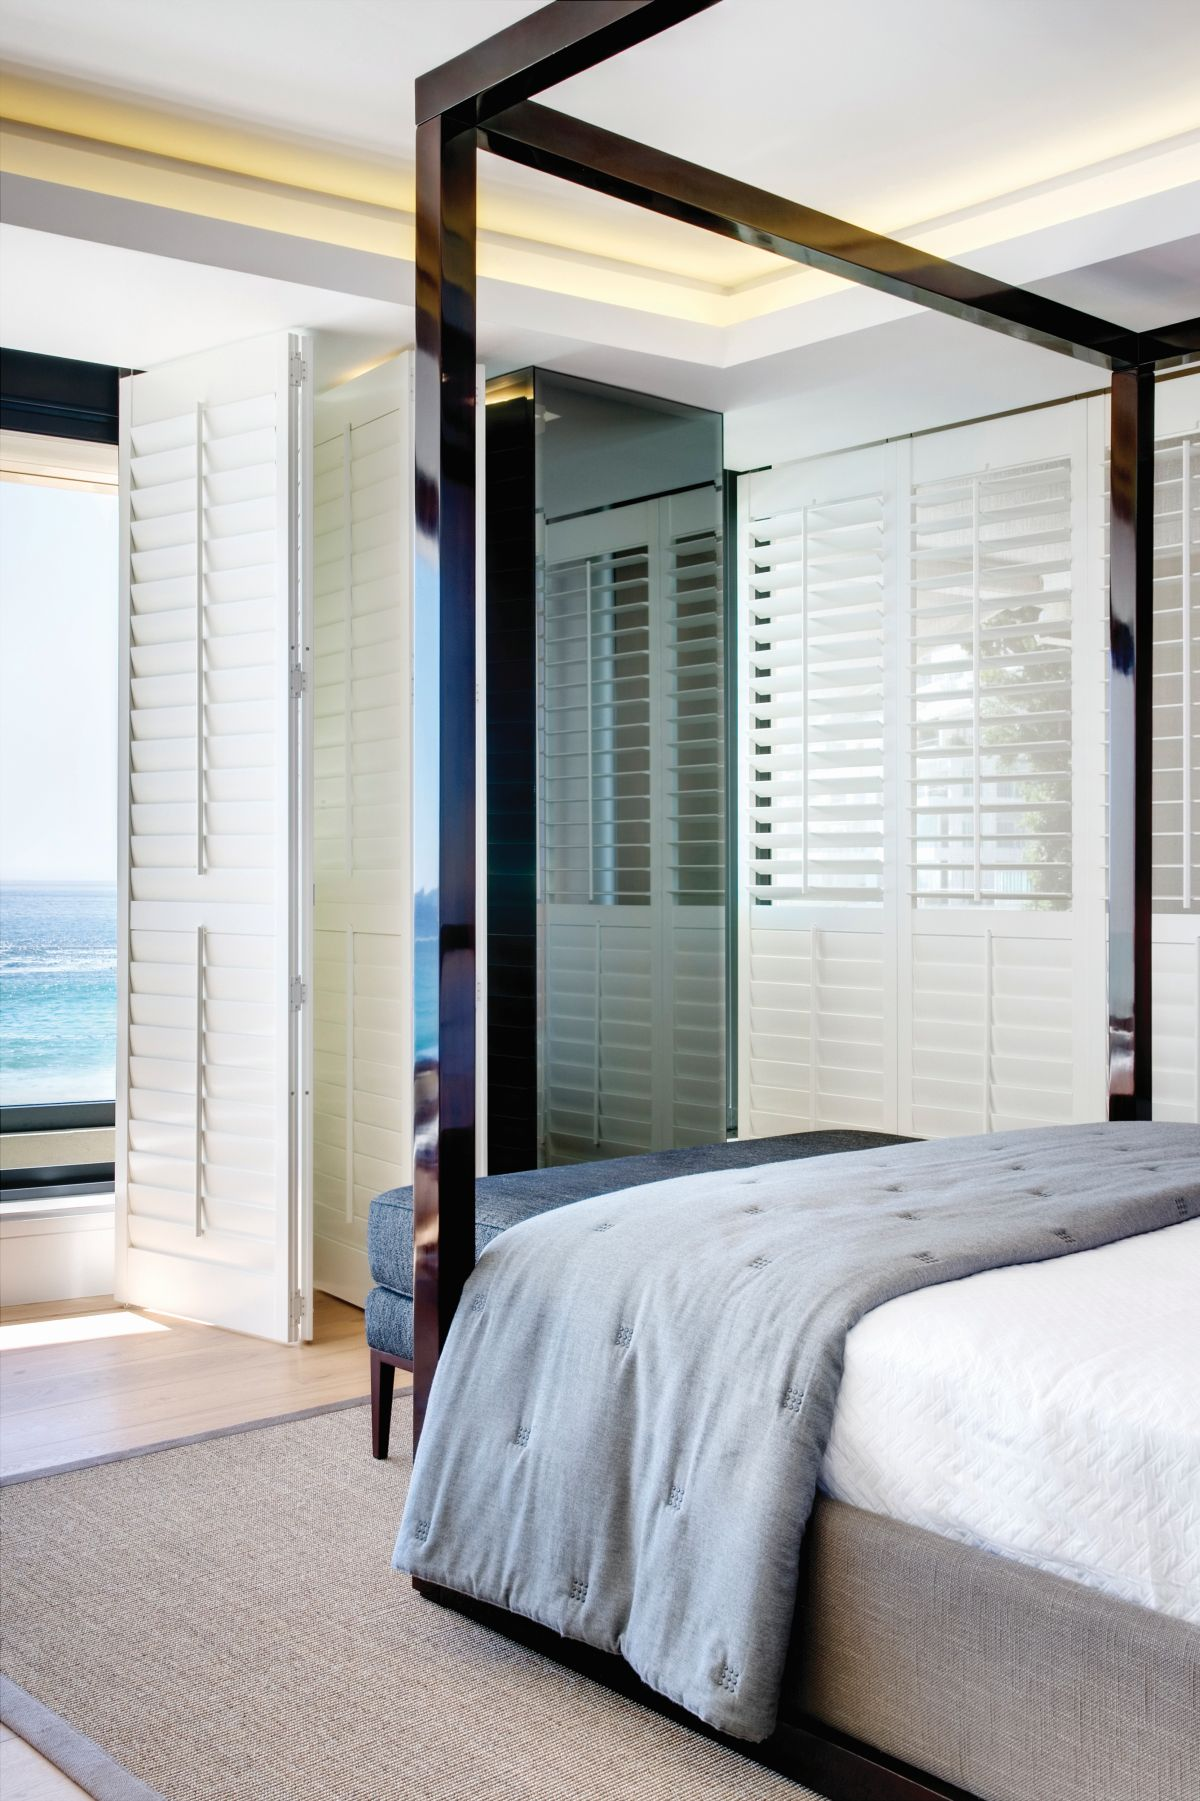 The wooden shutters giving the bedrooms a particularly casual look, in tone with the breezy ocean views